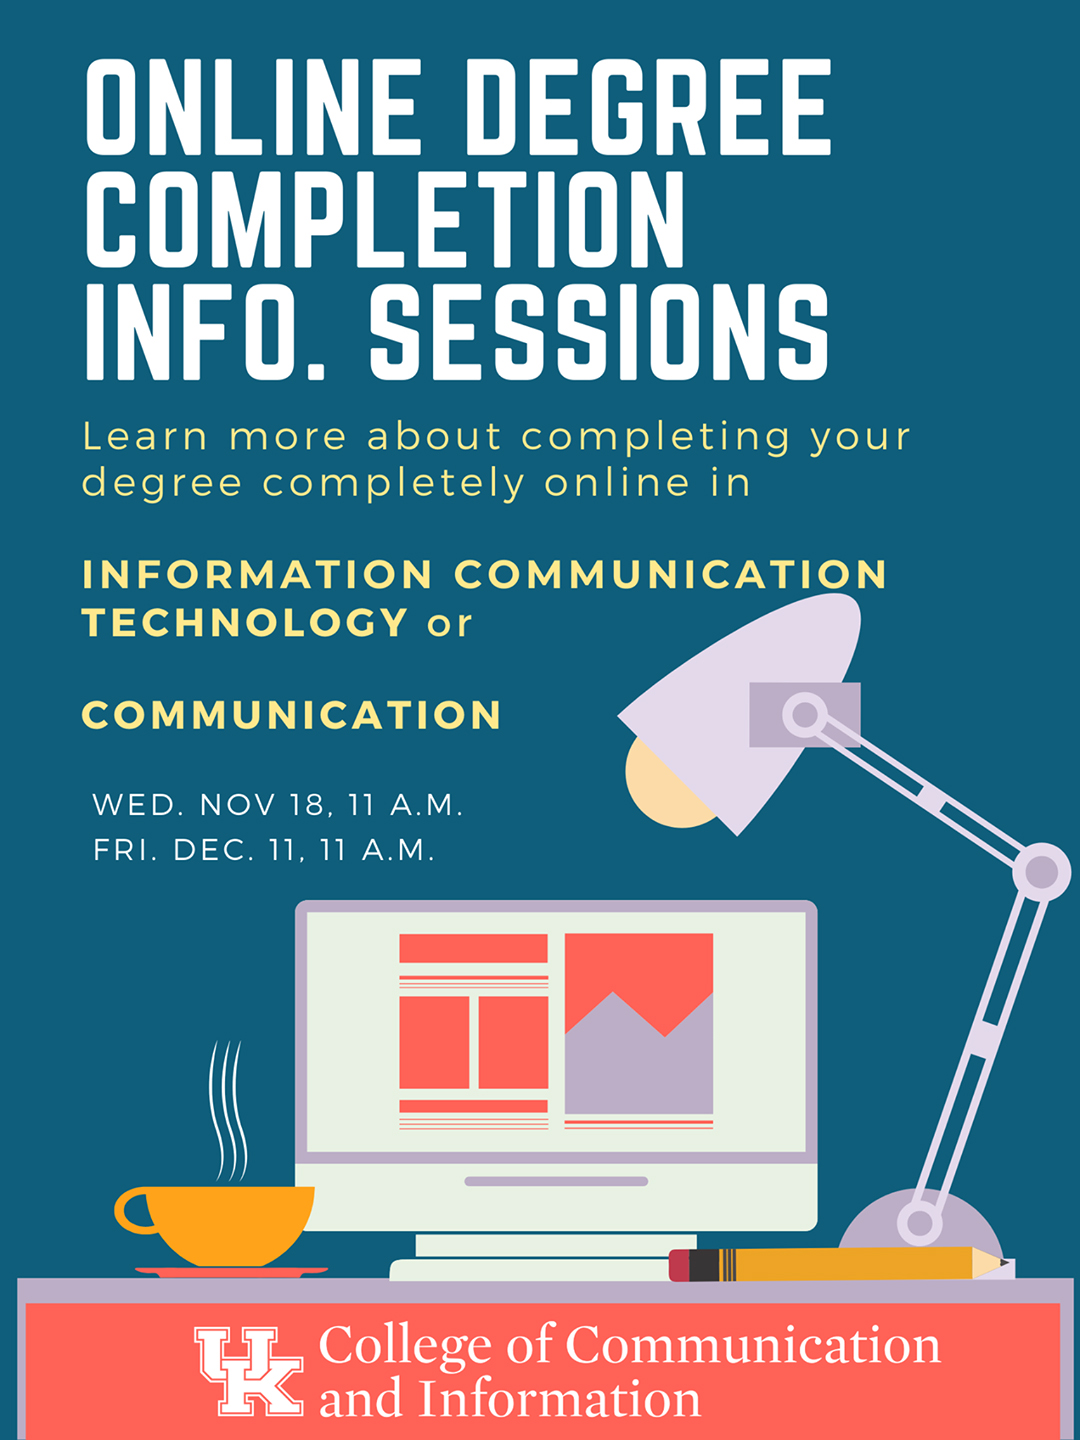 Online Degree Completion Info Sessions Flyer